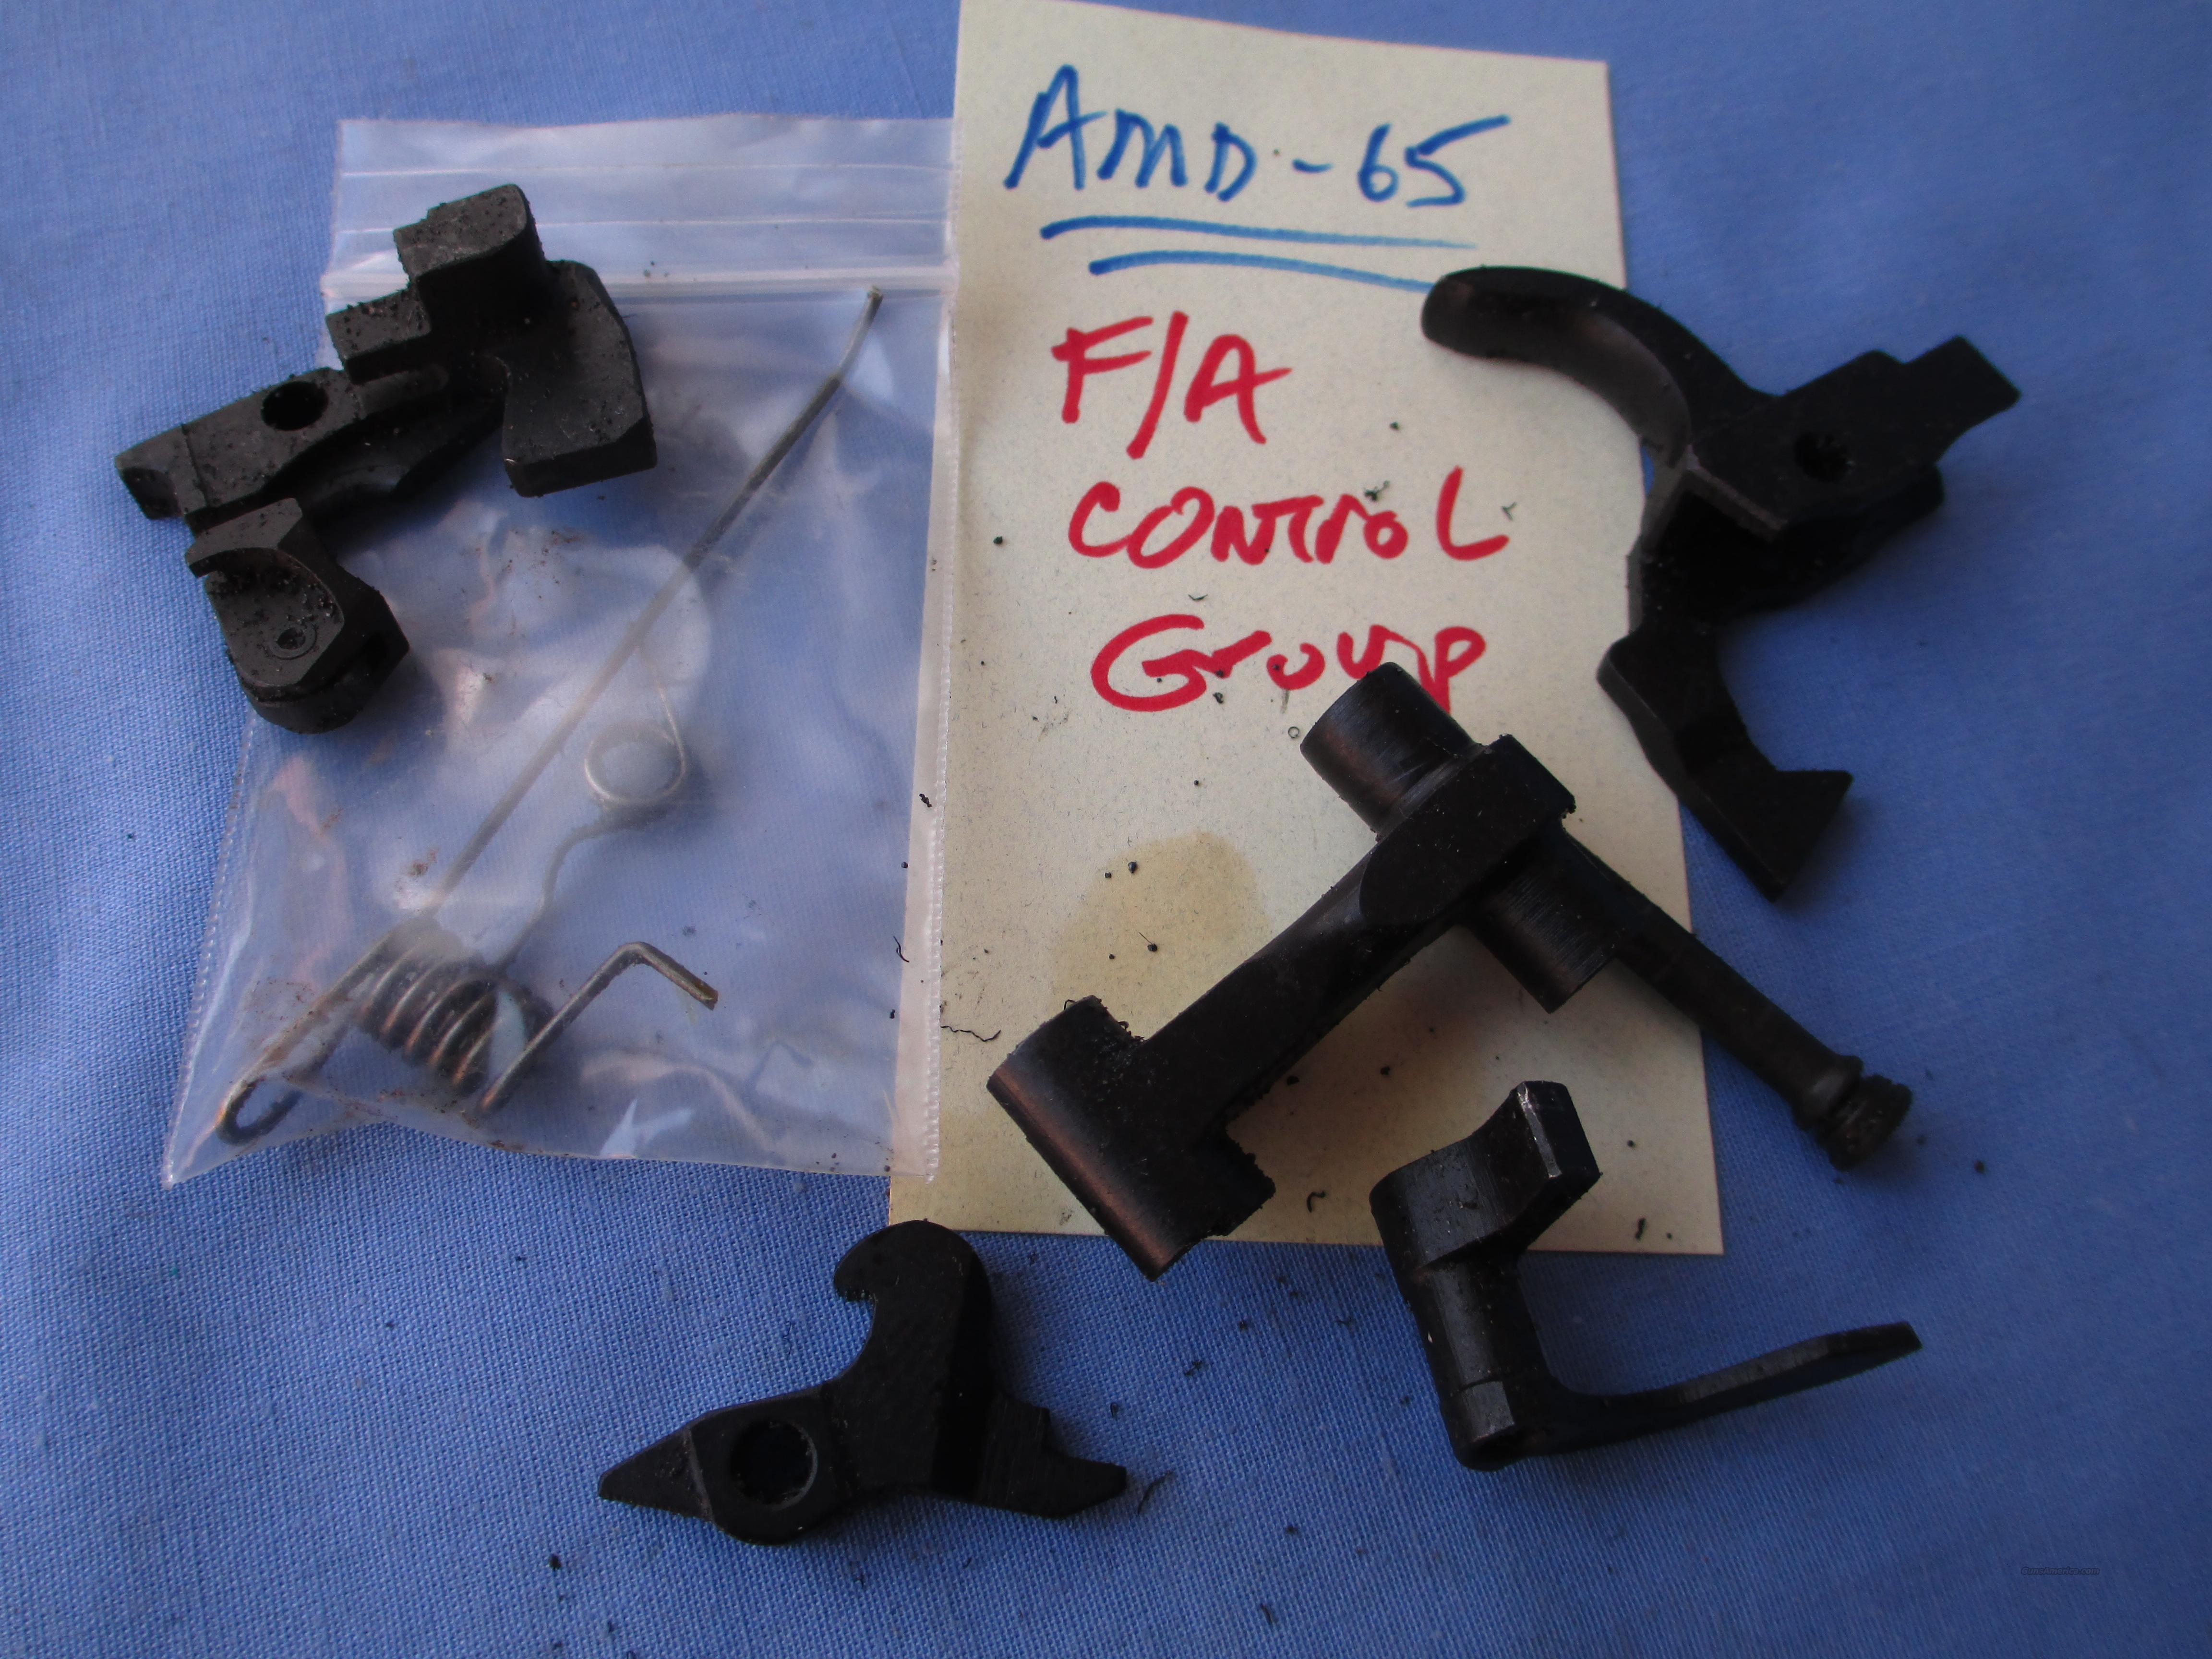 AK47 AMD 65 Full Auto Fire Control Group Set for sale